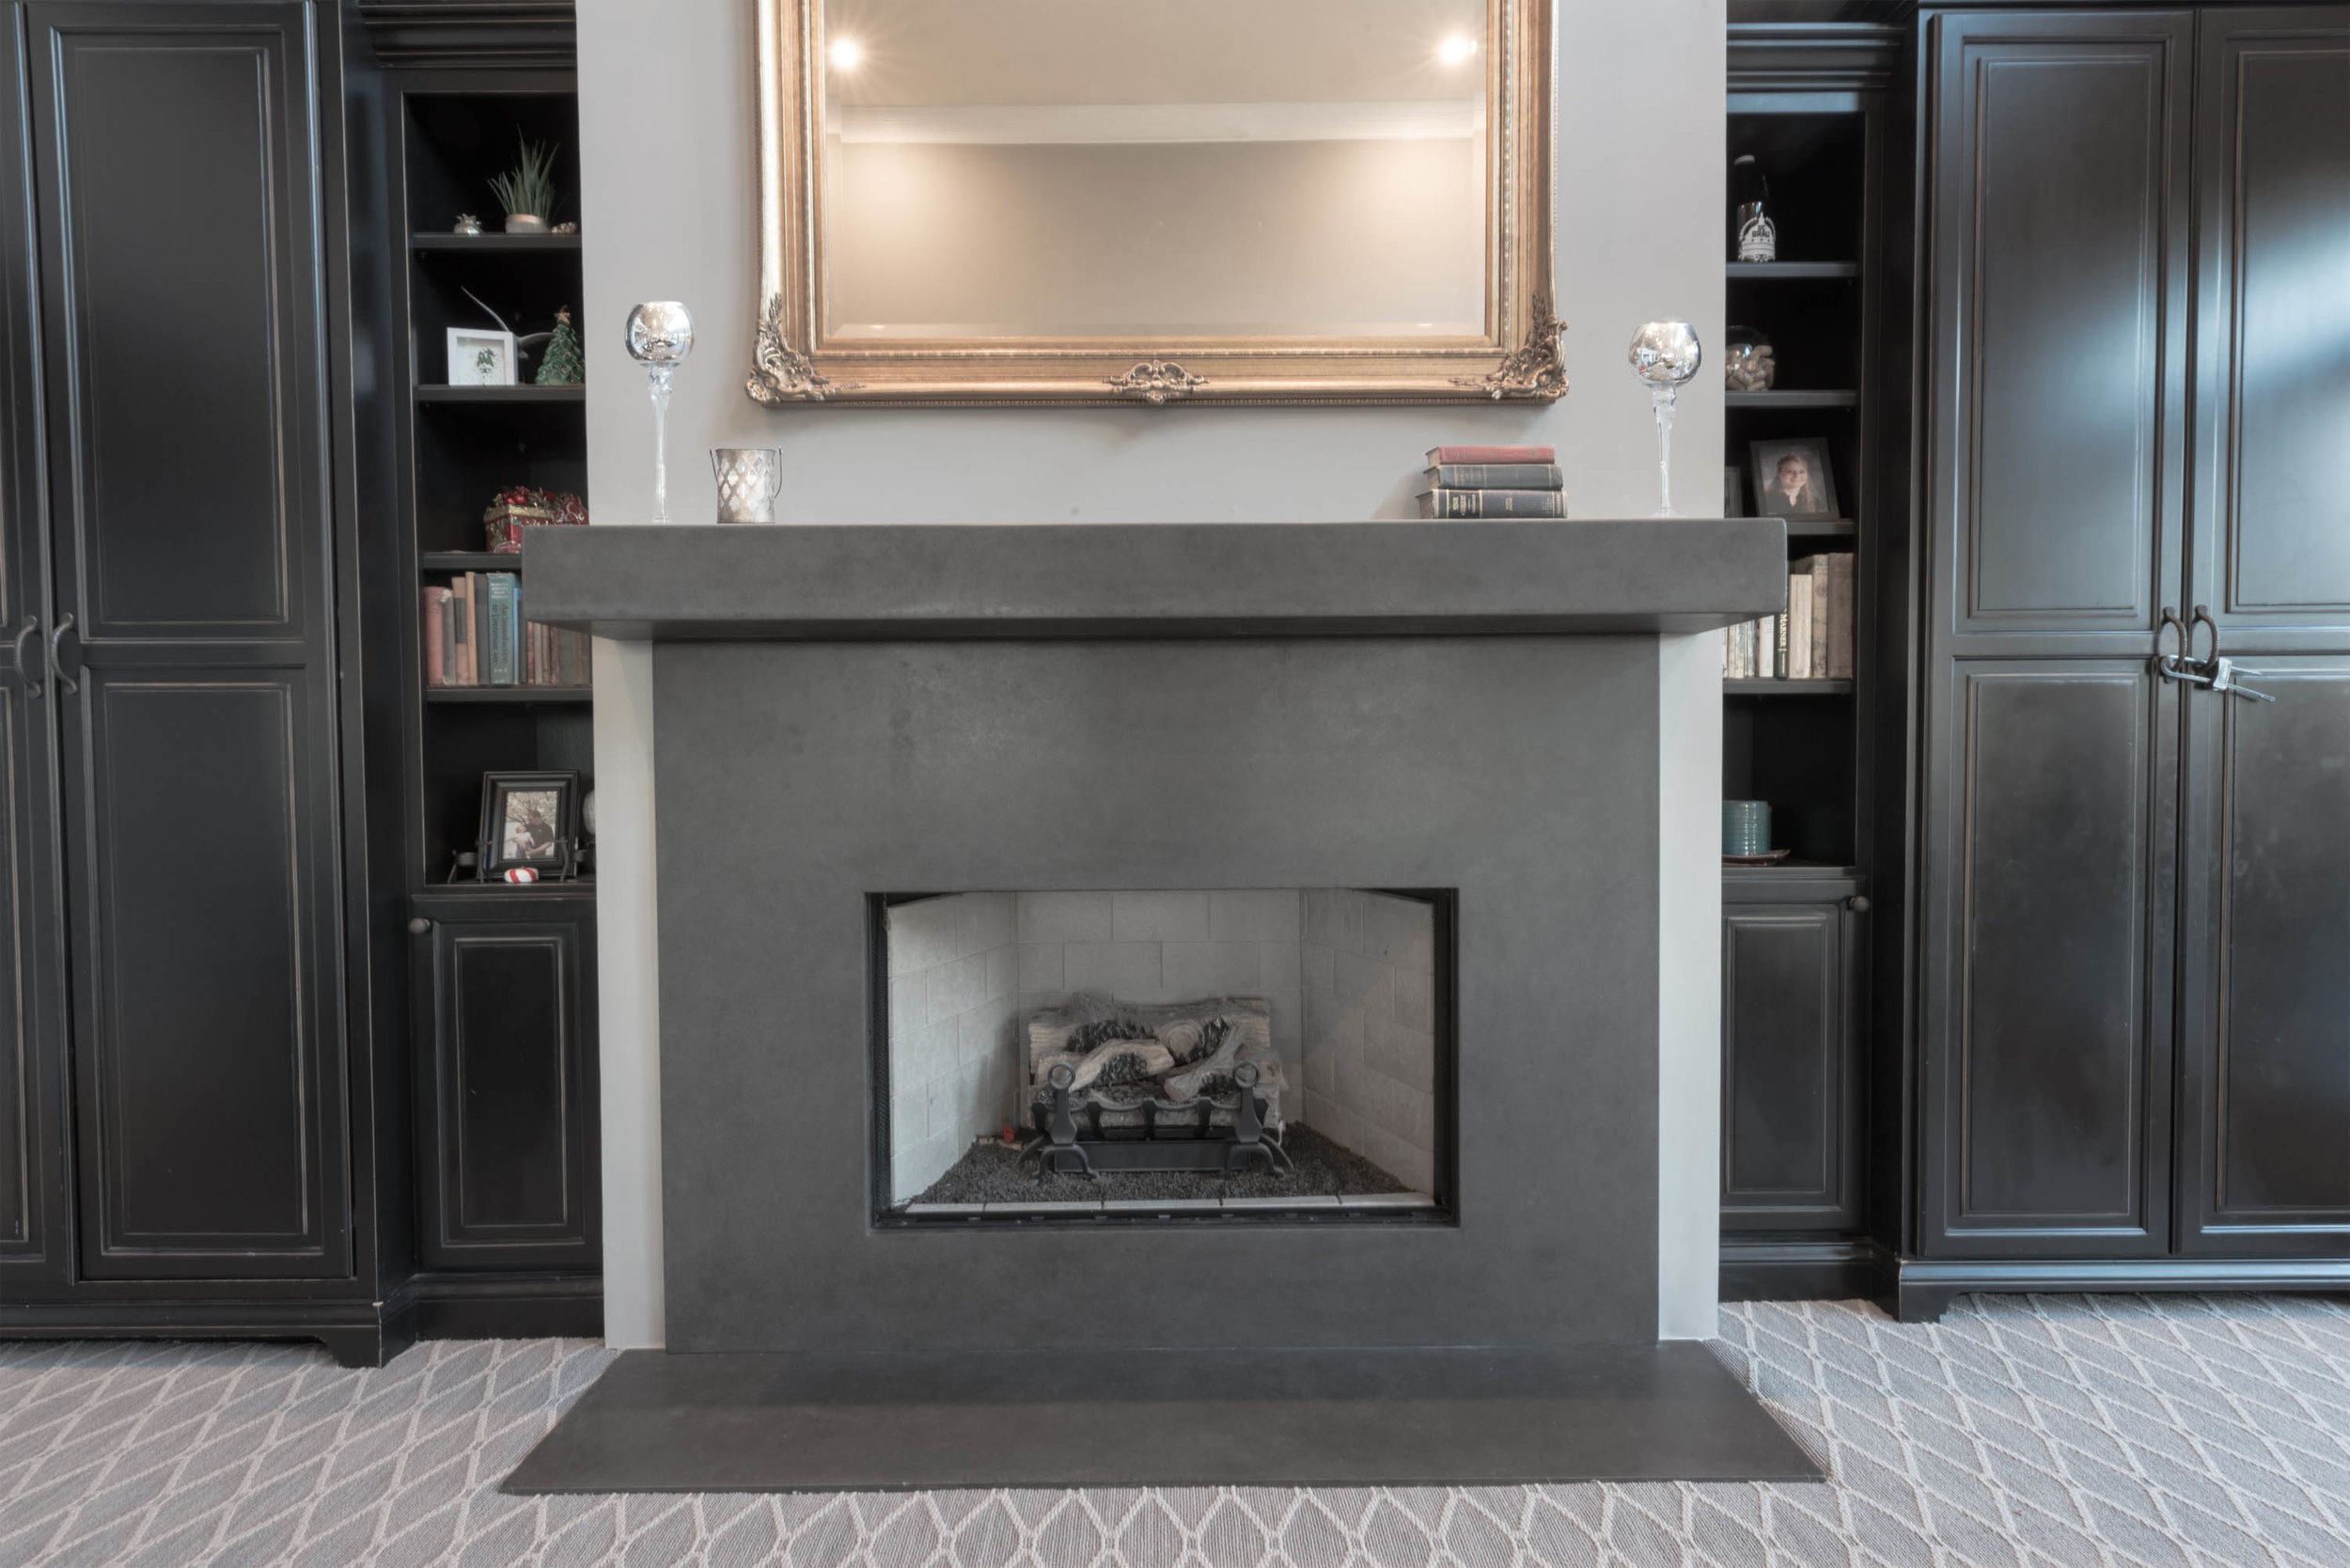 A clean fire surround and mantel quietly anchors the living space. Understated and solid.